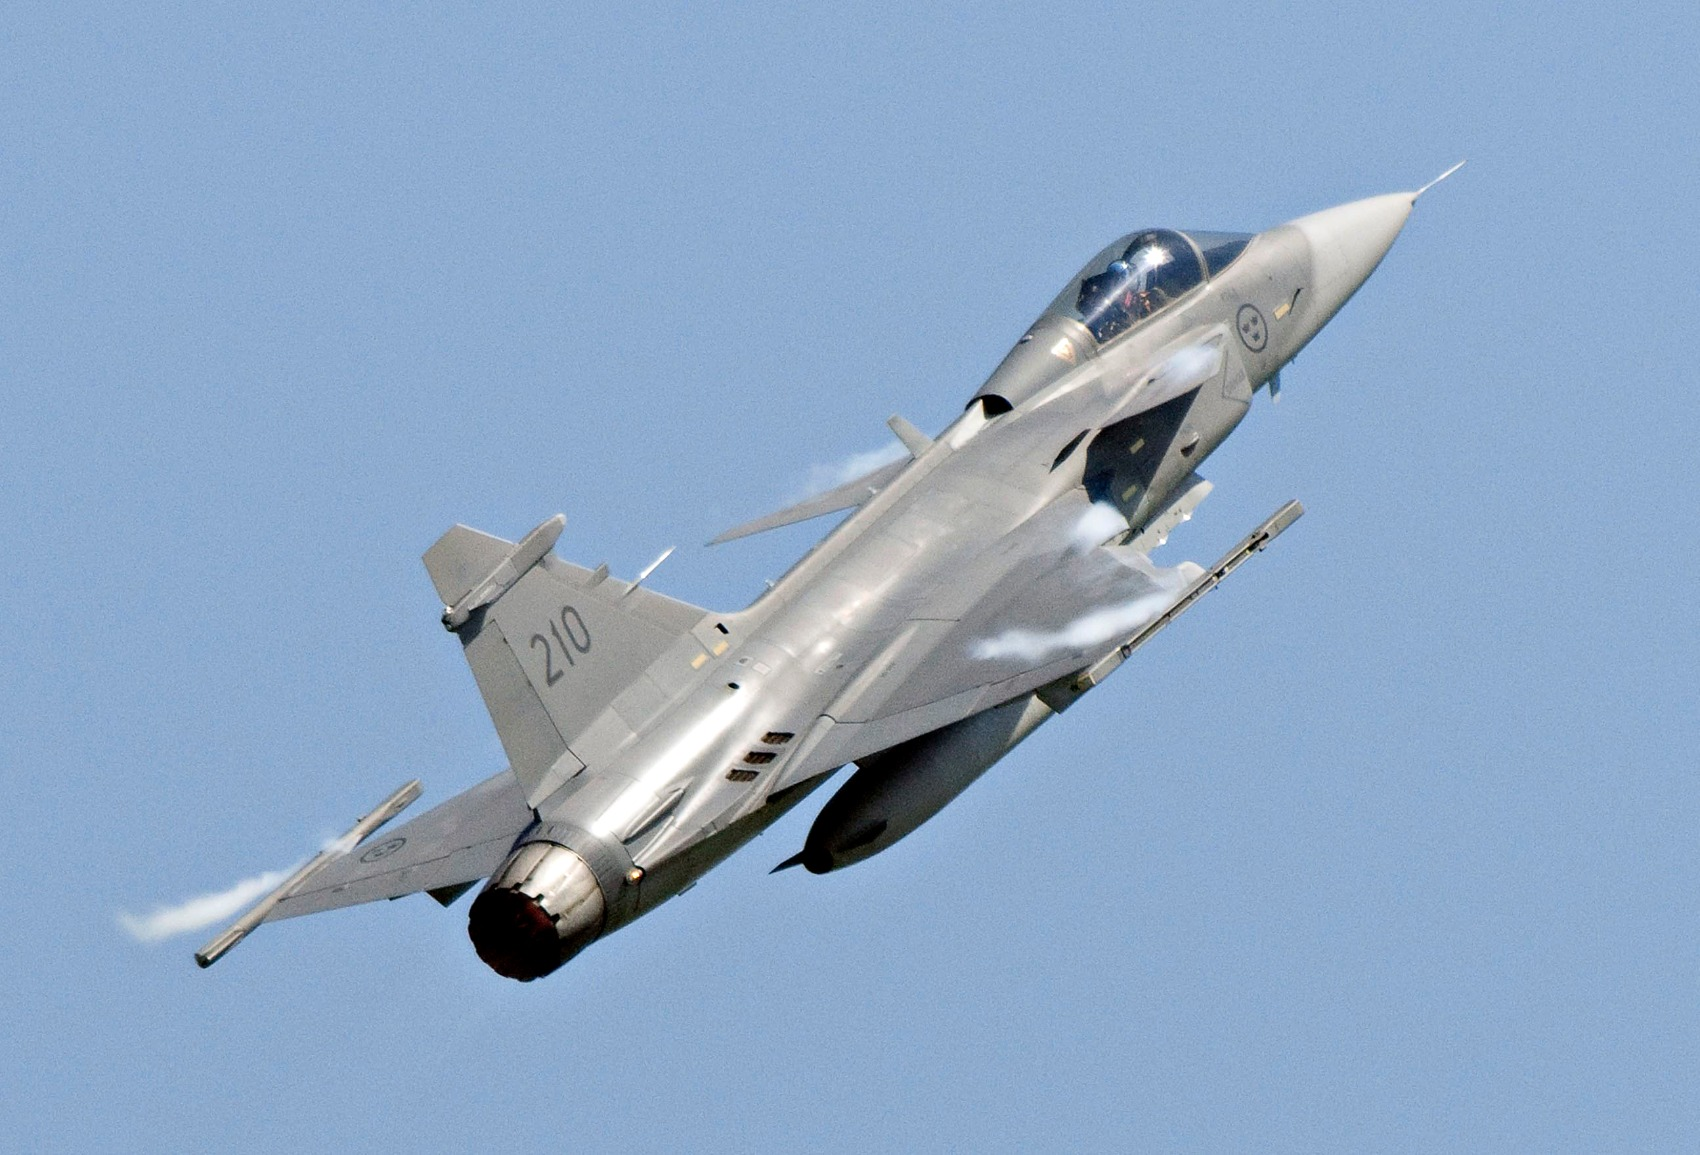 Sweden's JAS 39 Gripen Fighter: Can't Afford an F-35? Buy This